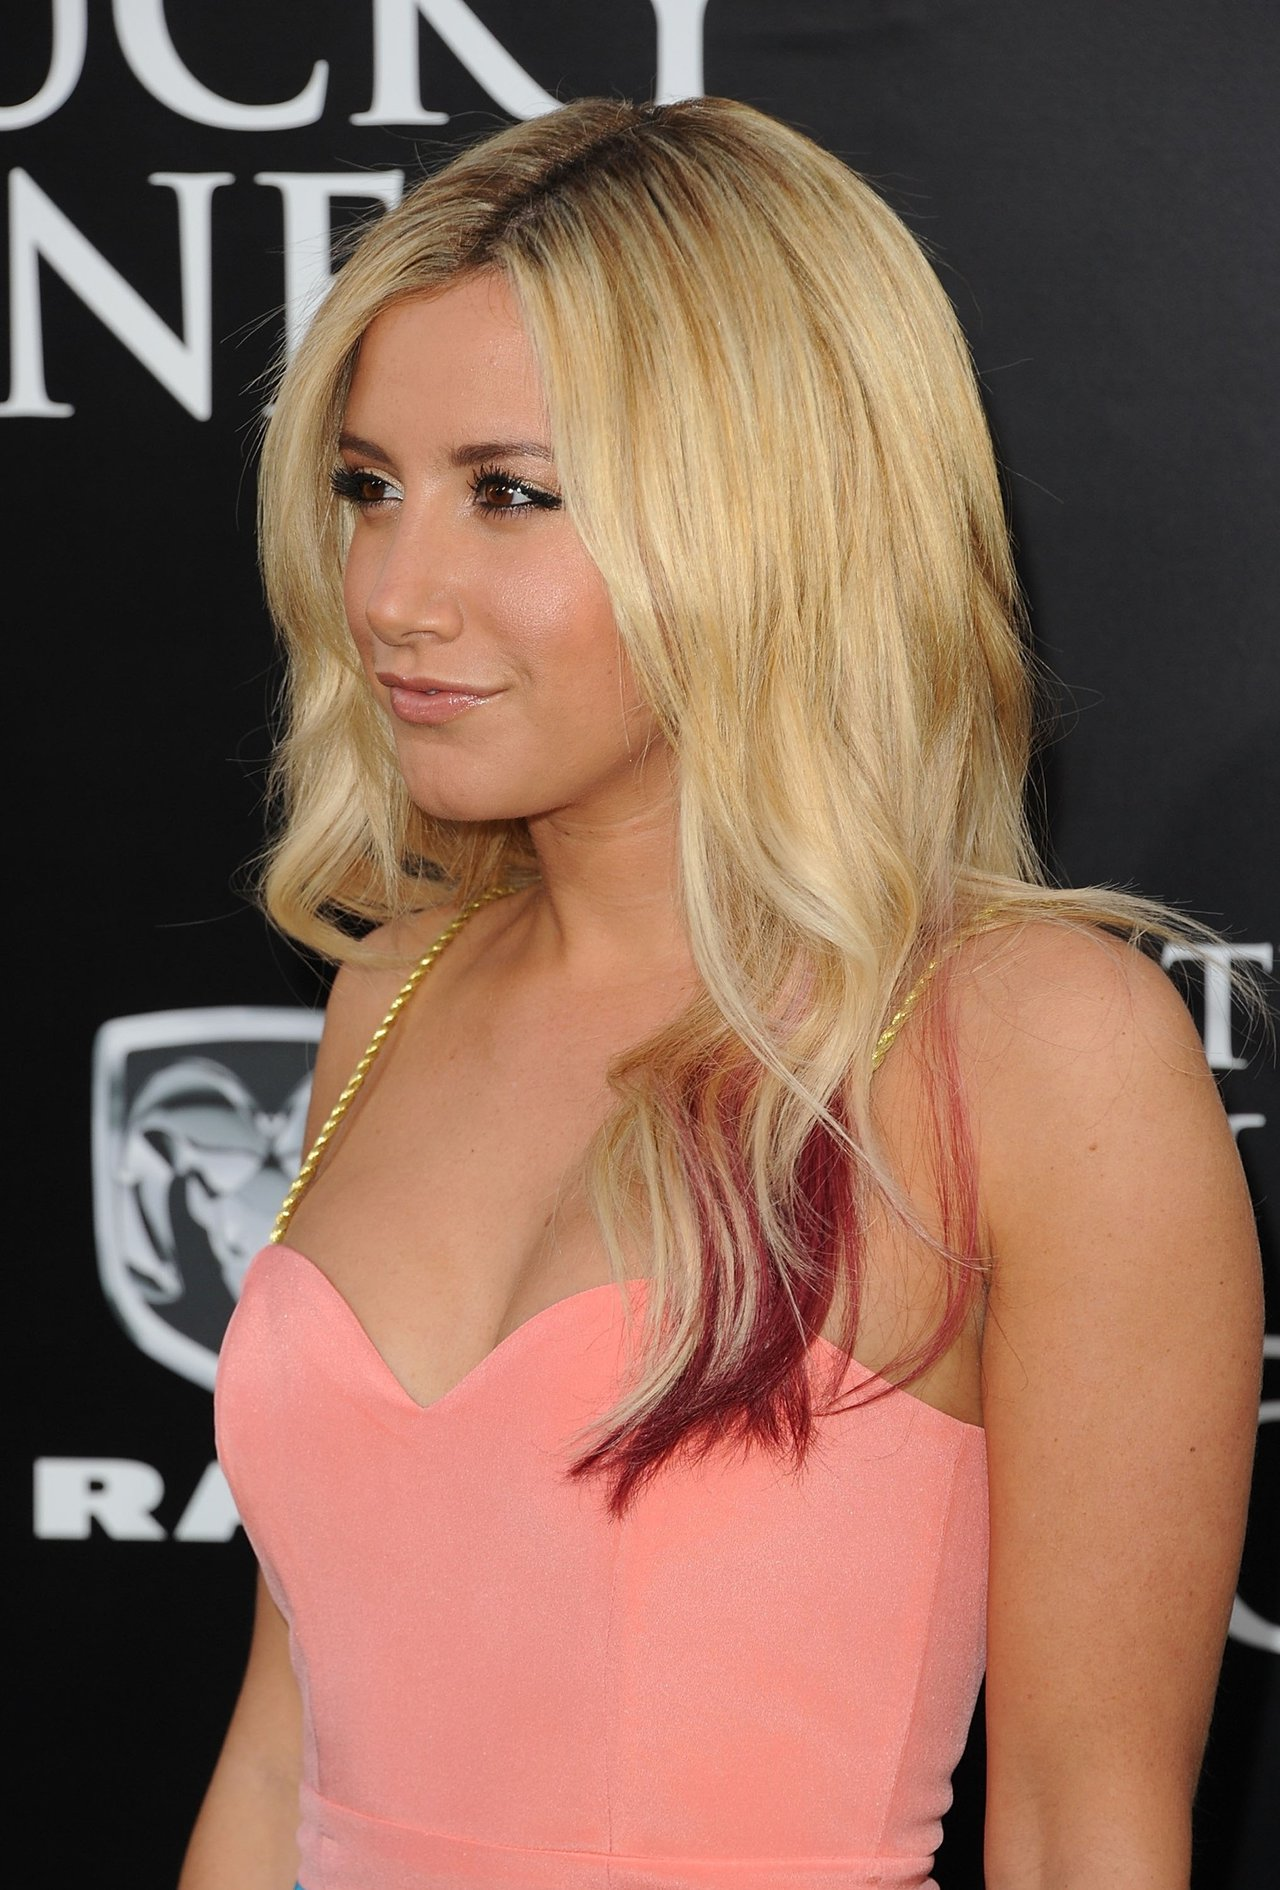 Ashley Tisdale the Lucky One premiere in Los Angeles on April 16, 2012